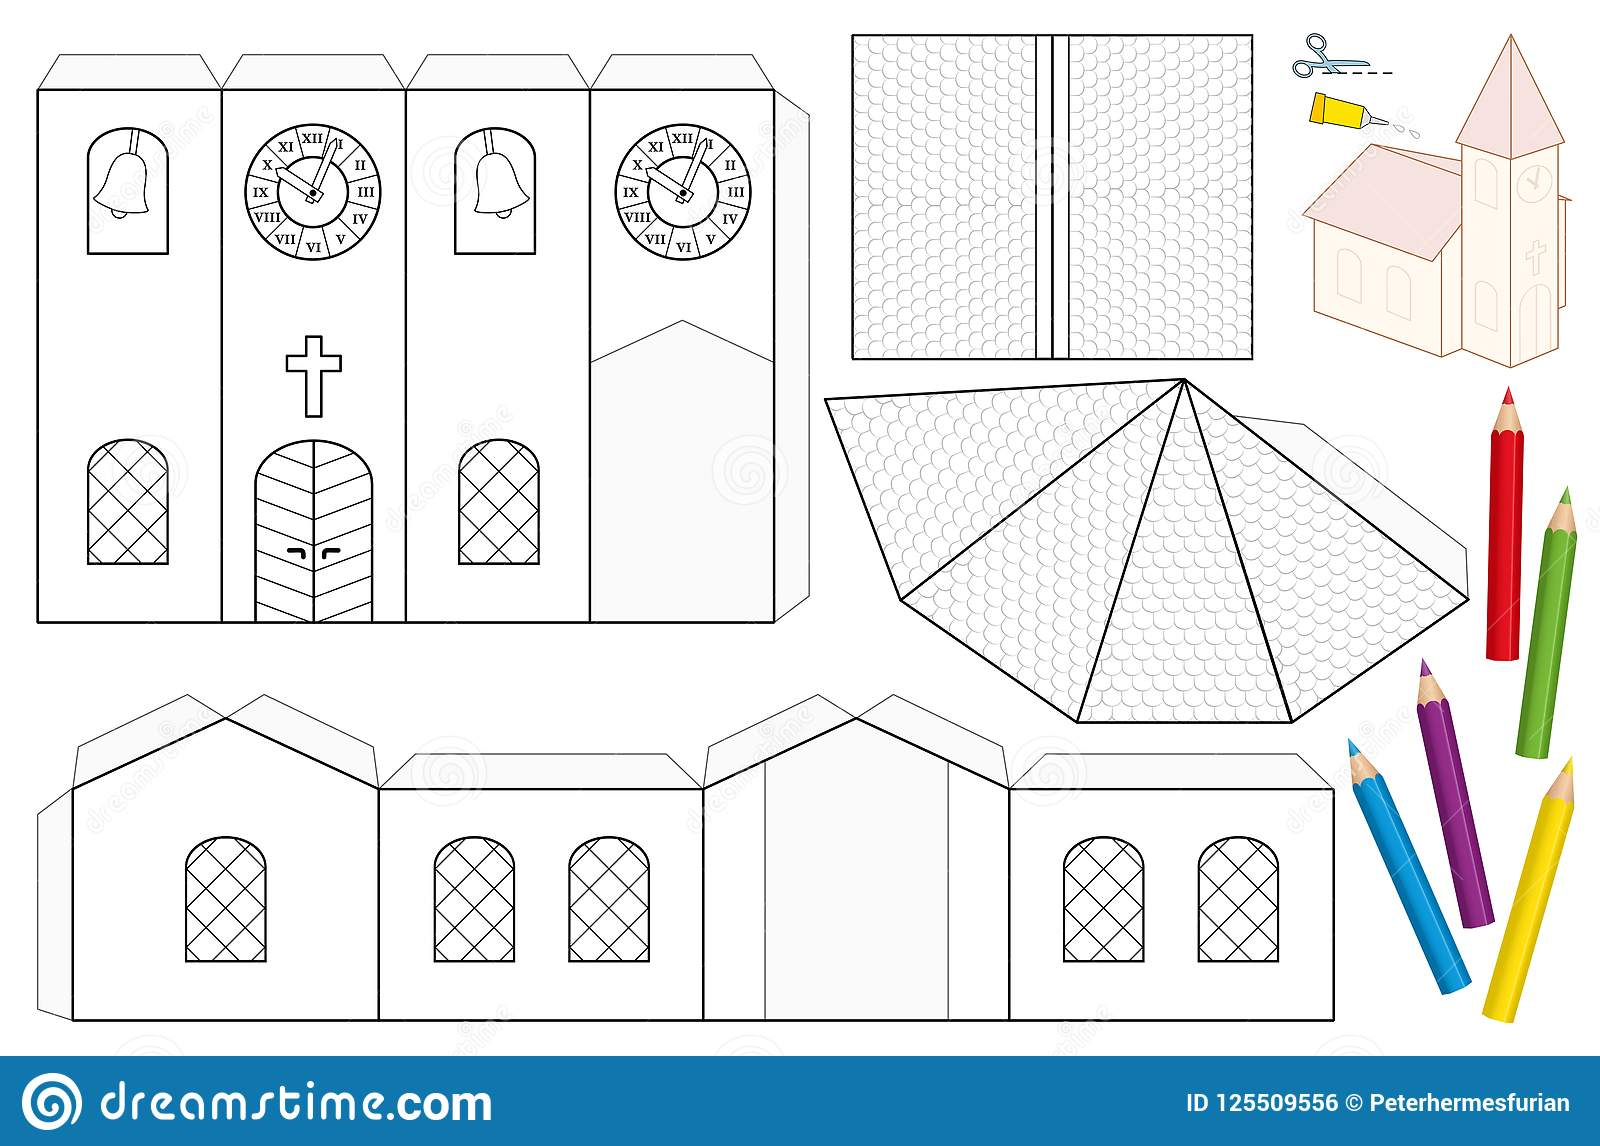 template of a church